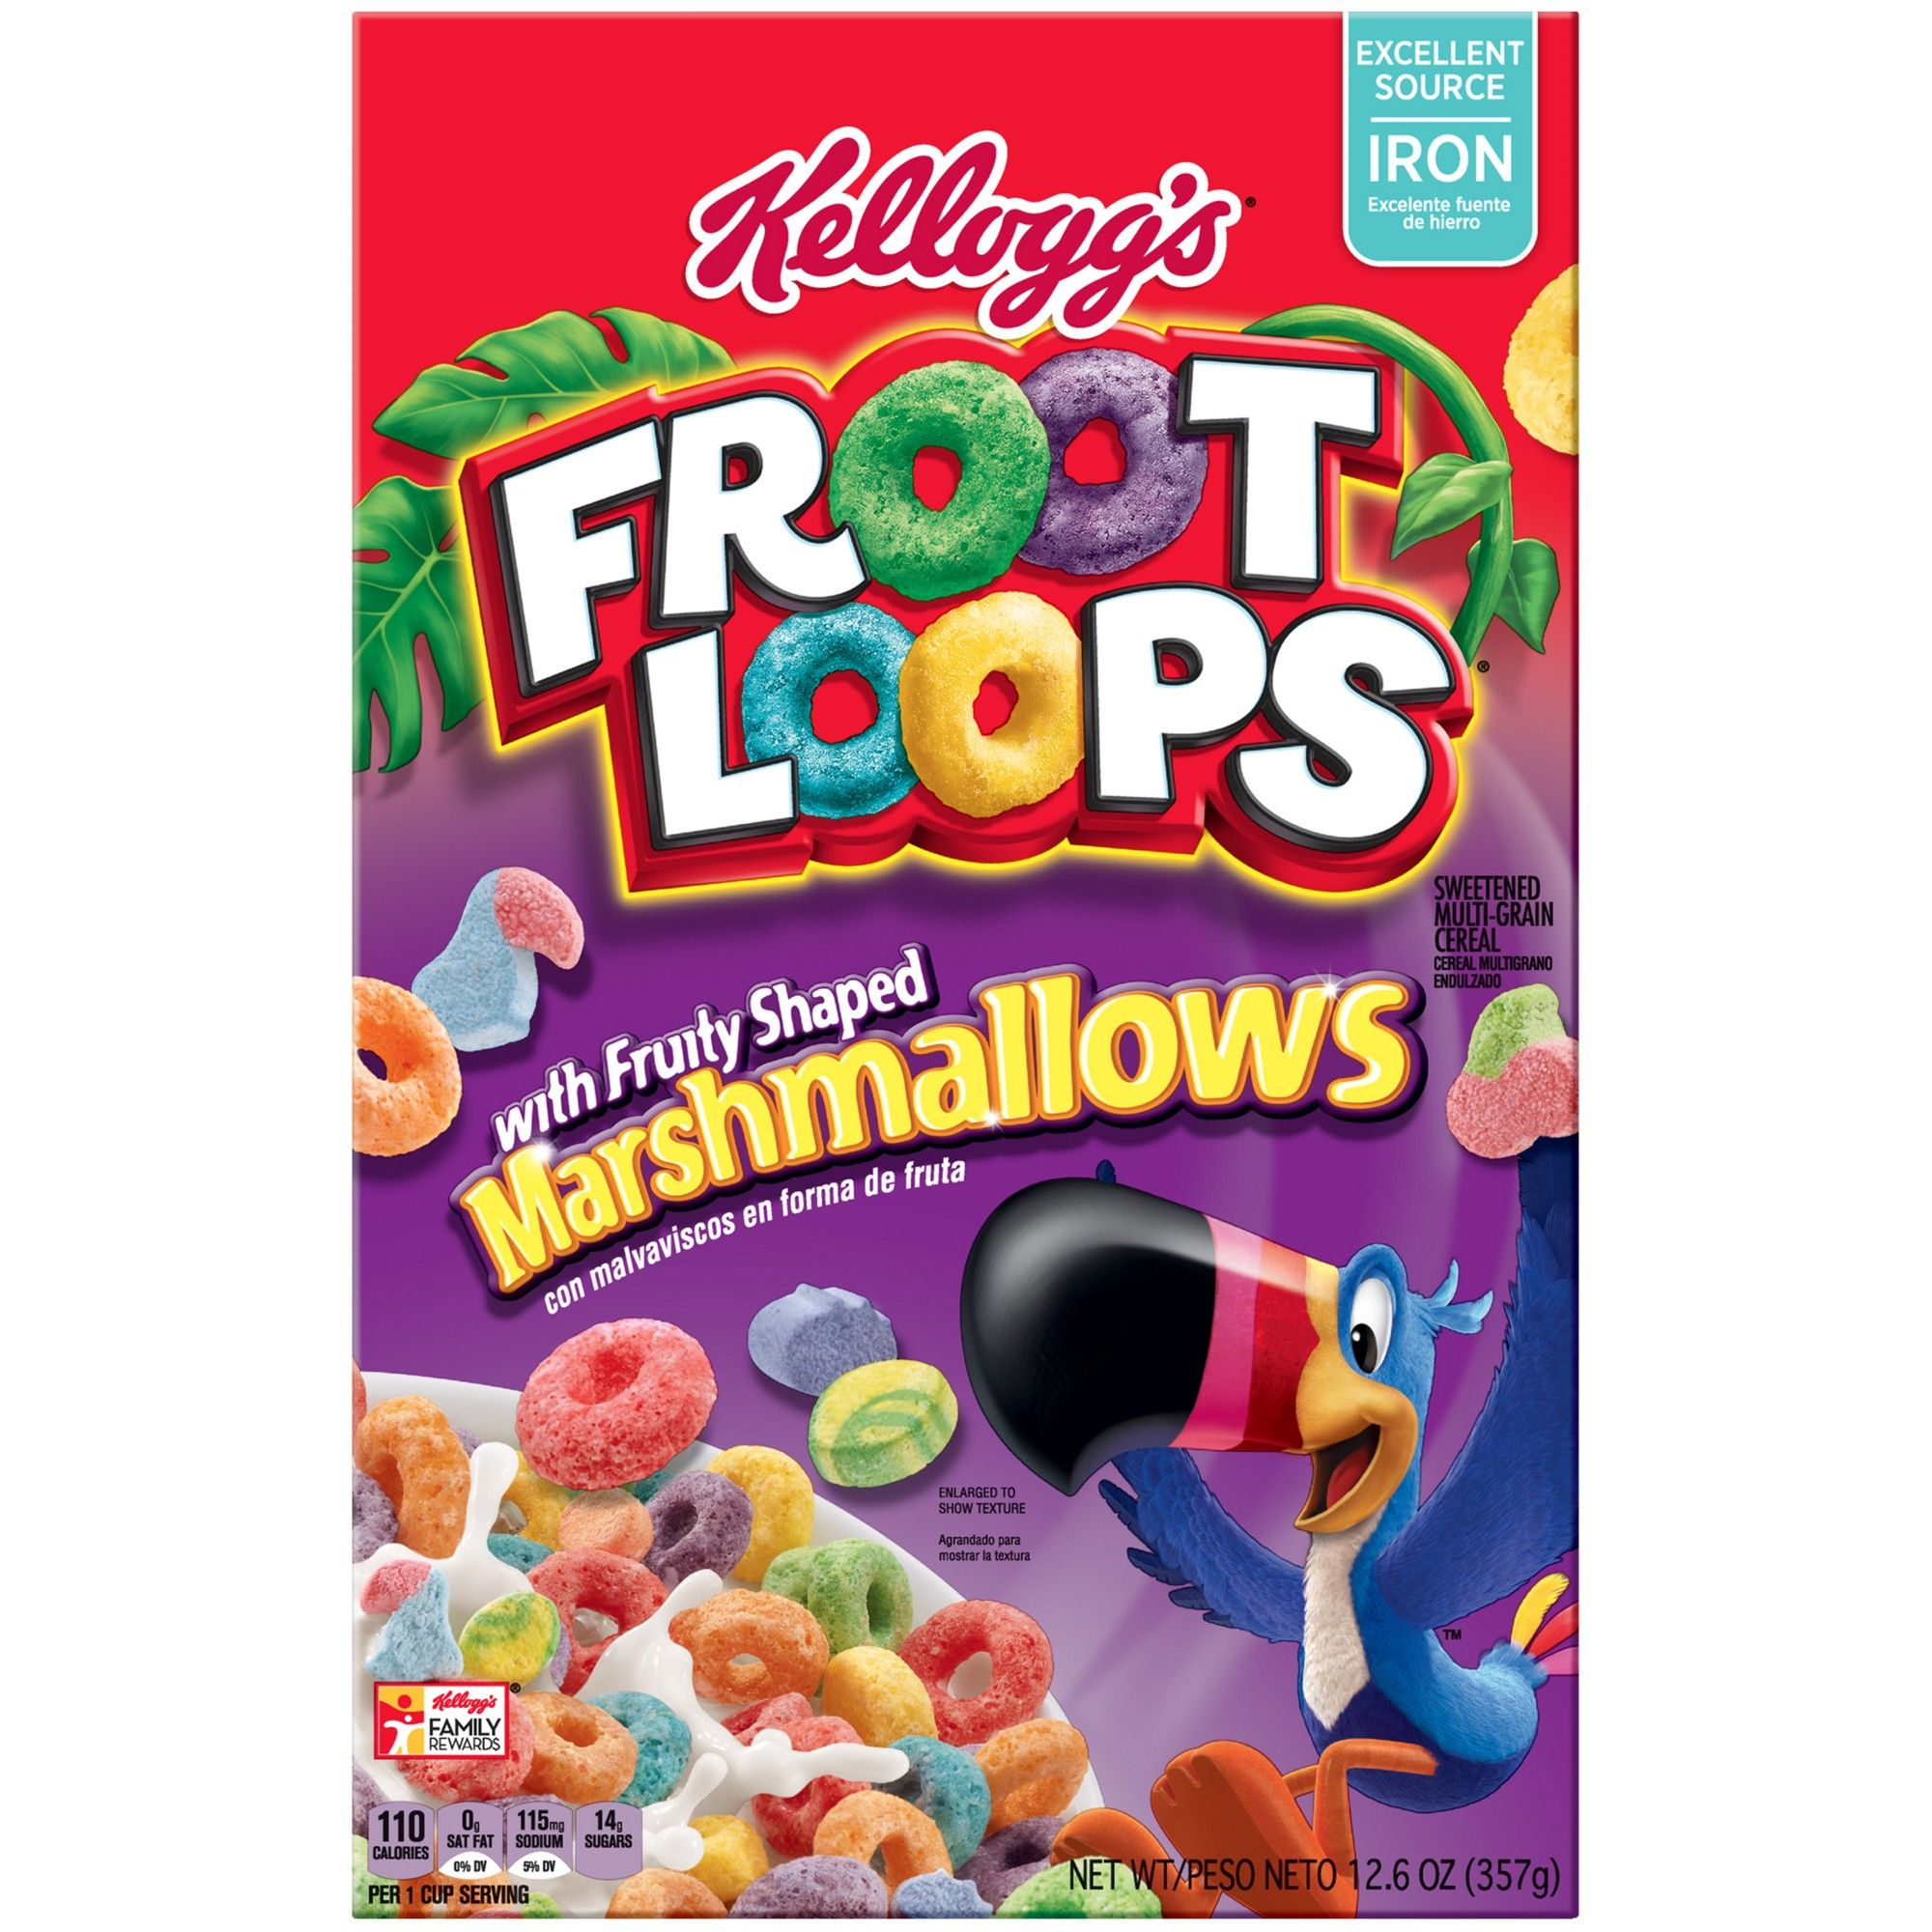 Fruit Loops With Fruity Shaped Marshmallows Breakfast Cereal 10 5oz Kellogg S Fruit Loops With Marshmallows Marshmallow Cereal Cereal Brands